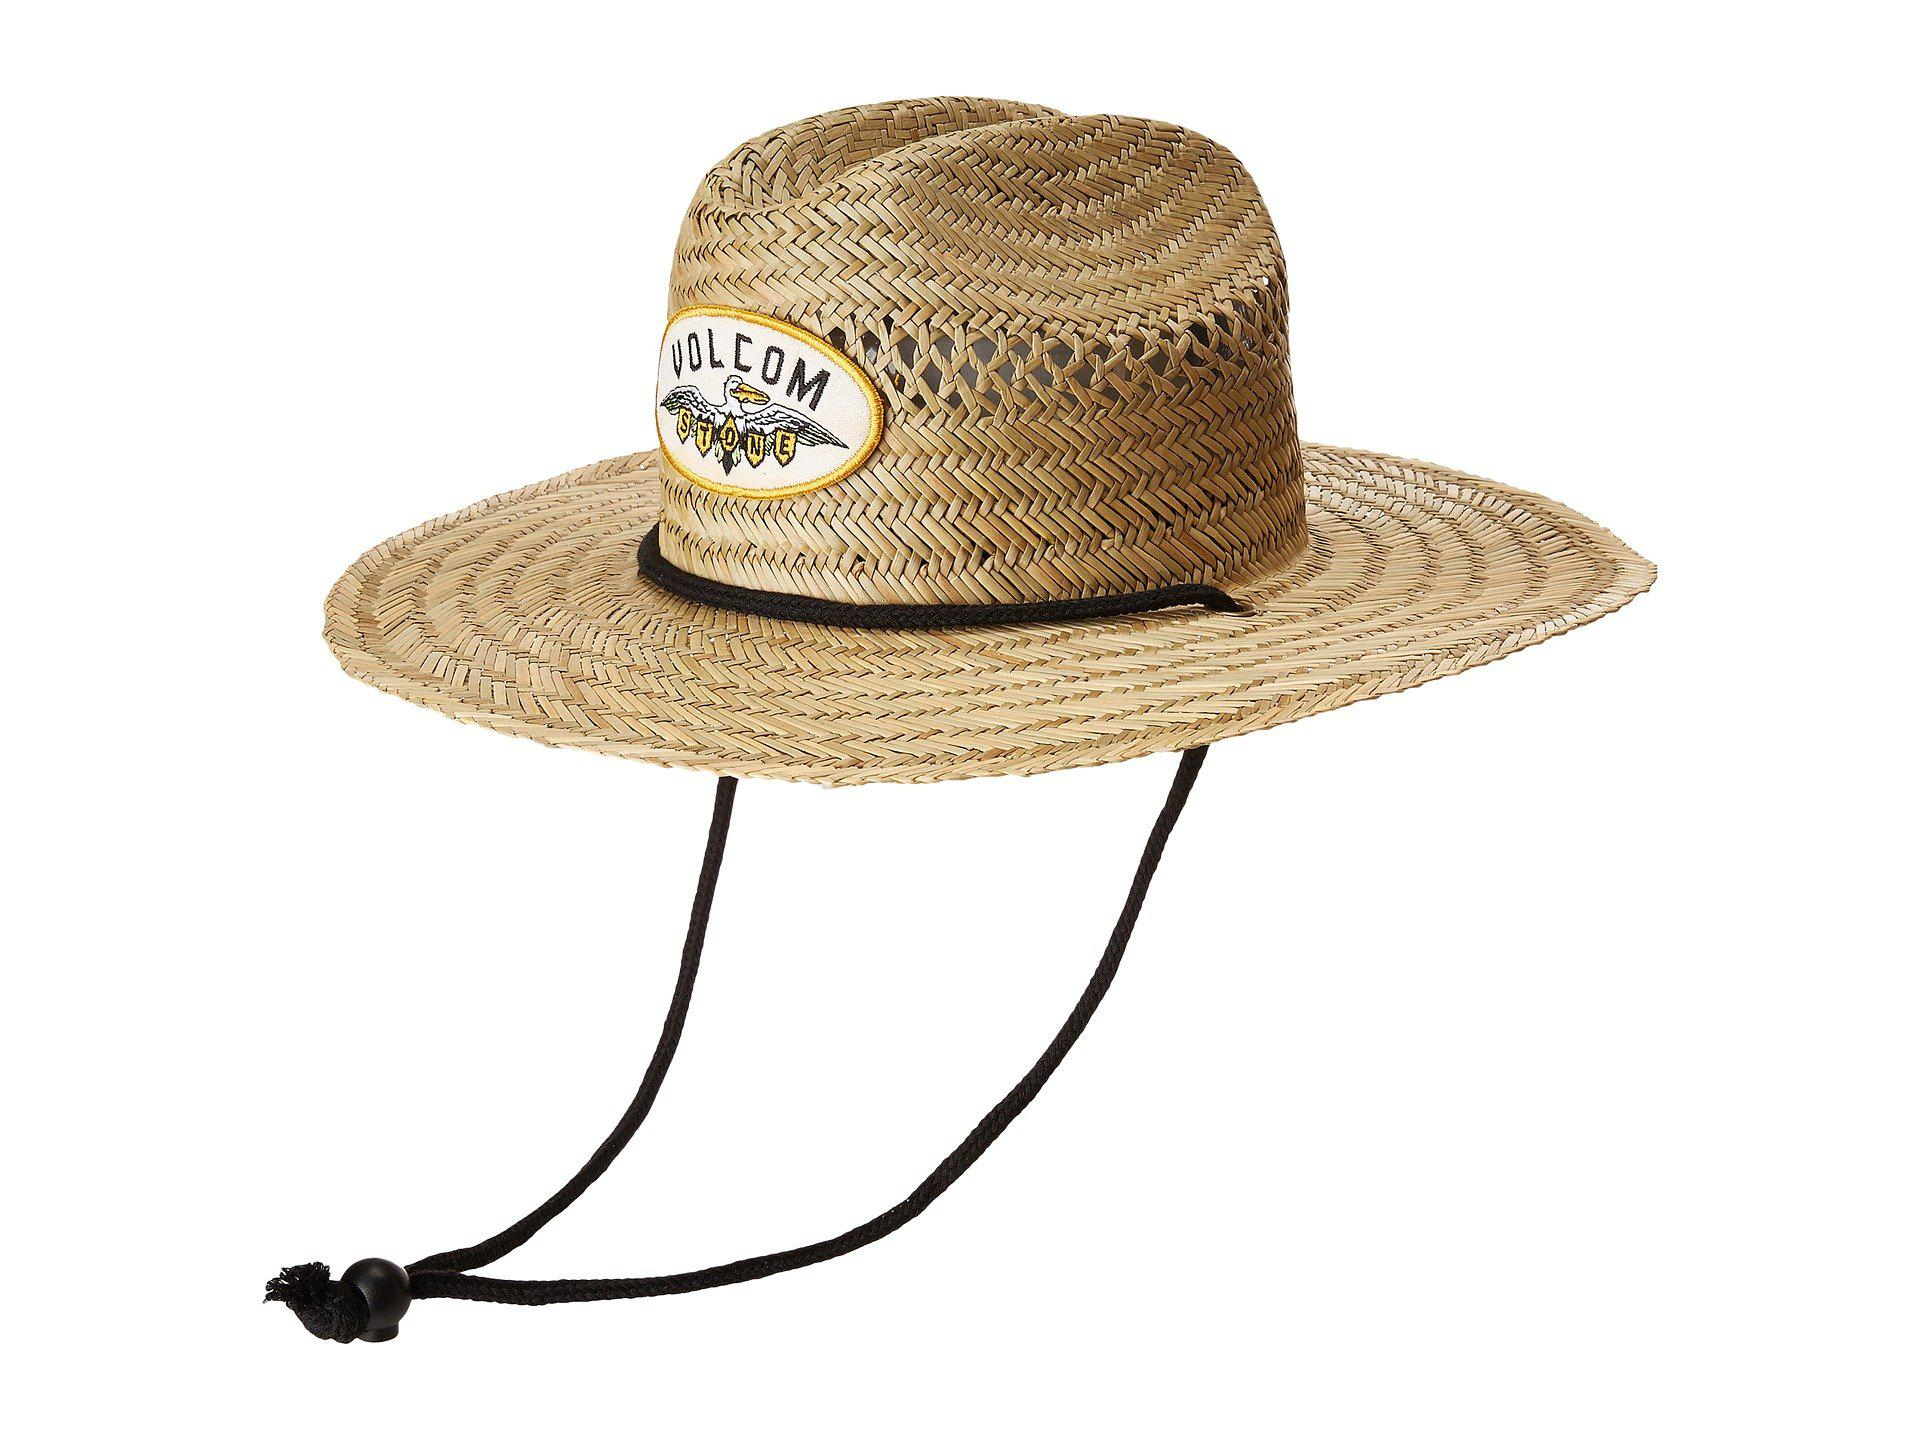 cc0b2080c5de7 Volcom Hellican Straw Hat in Natural - Lyst